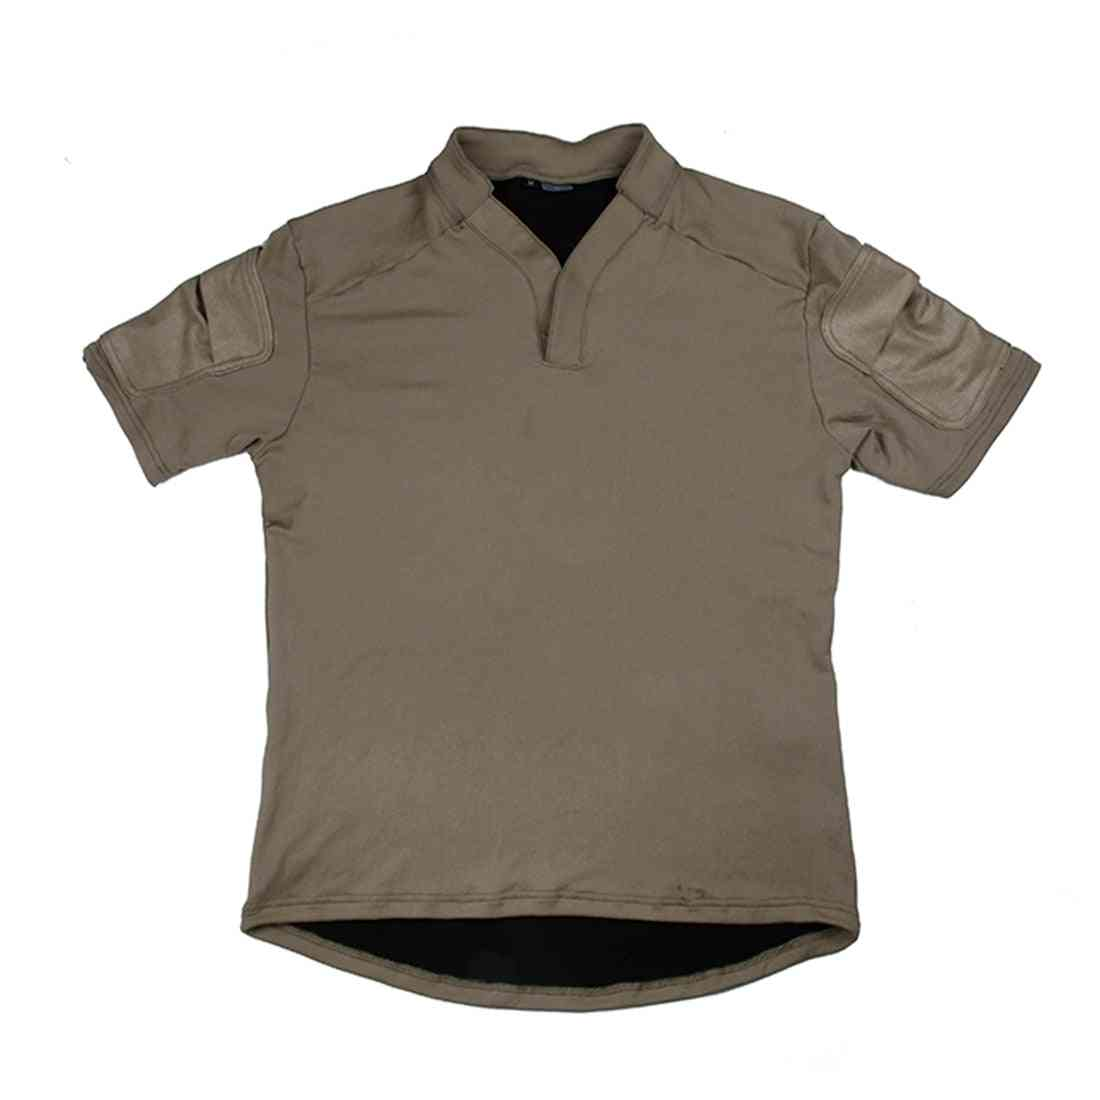 One Way Dry Tactical Base Rugby T-shirt With Two Envelope Pockets On The Sleeves